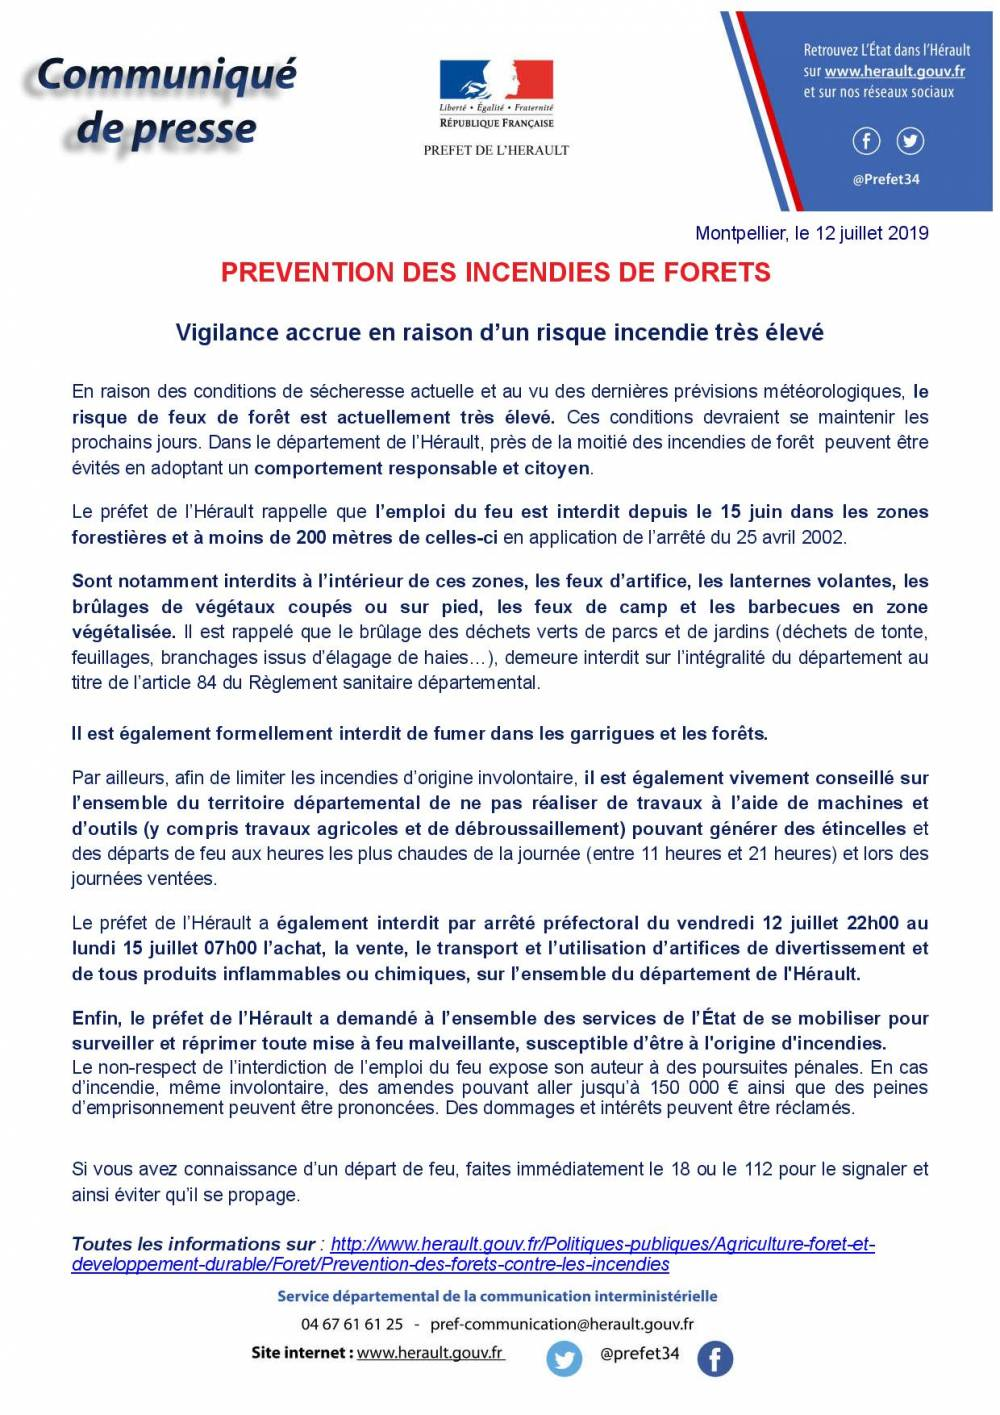 20190712 CP prevention incendie foret.odt page 001